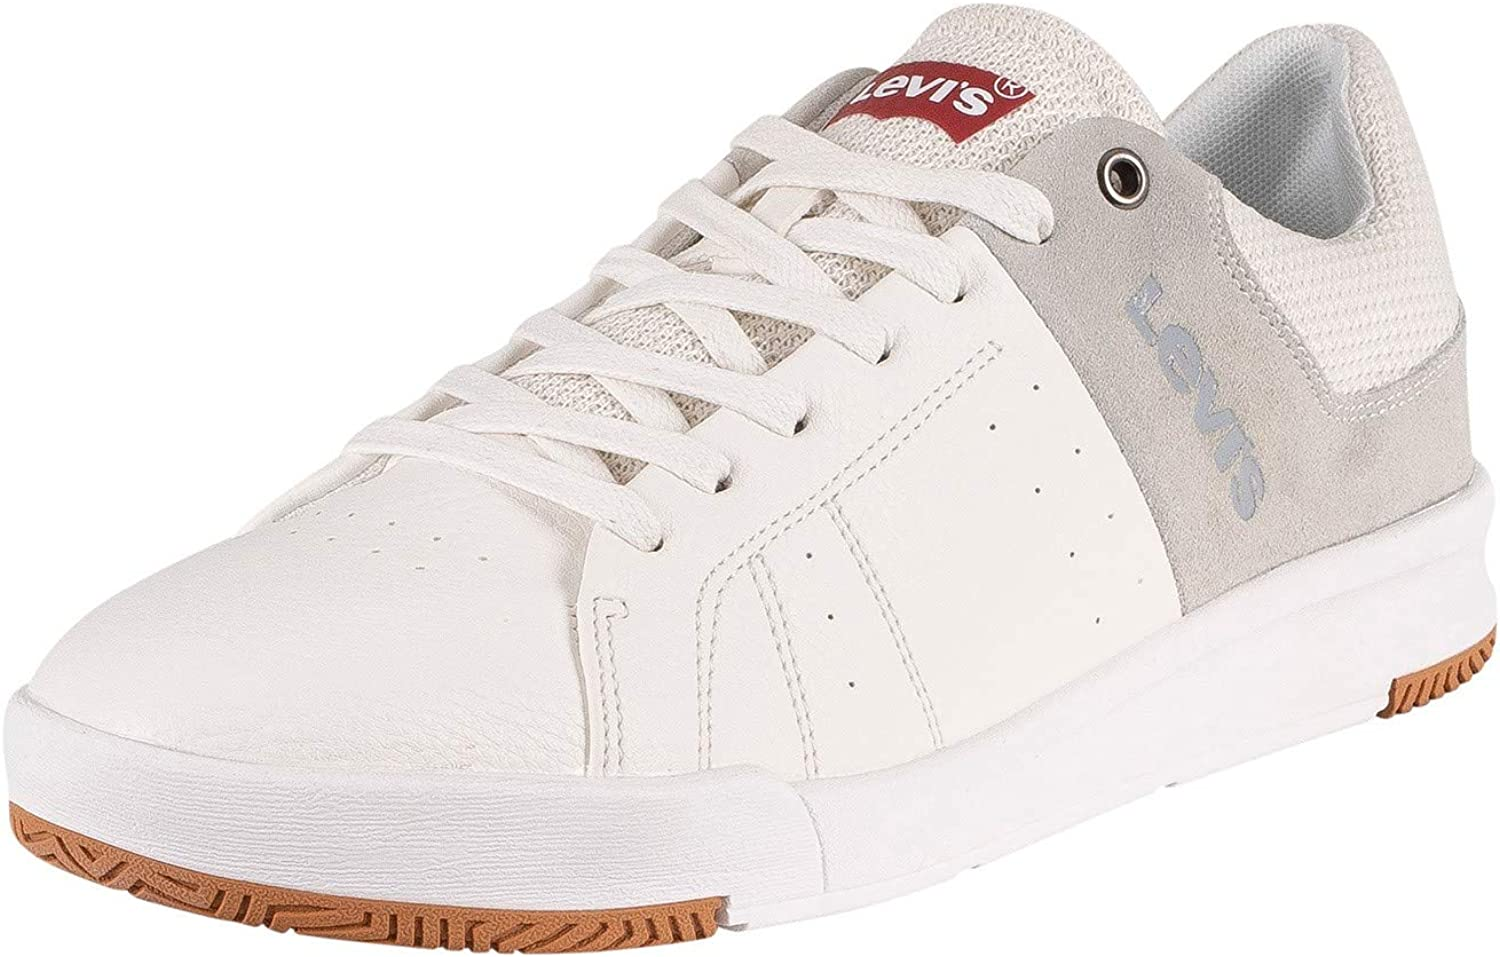 Toyonal Leather Trainers, White